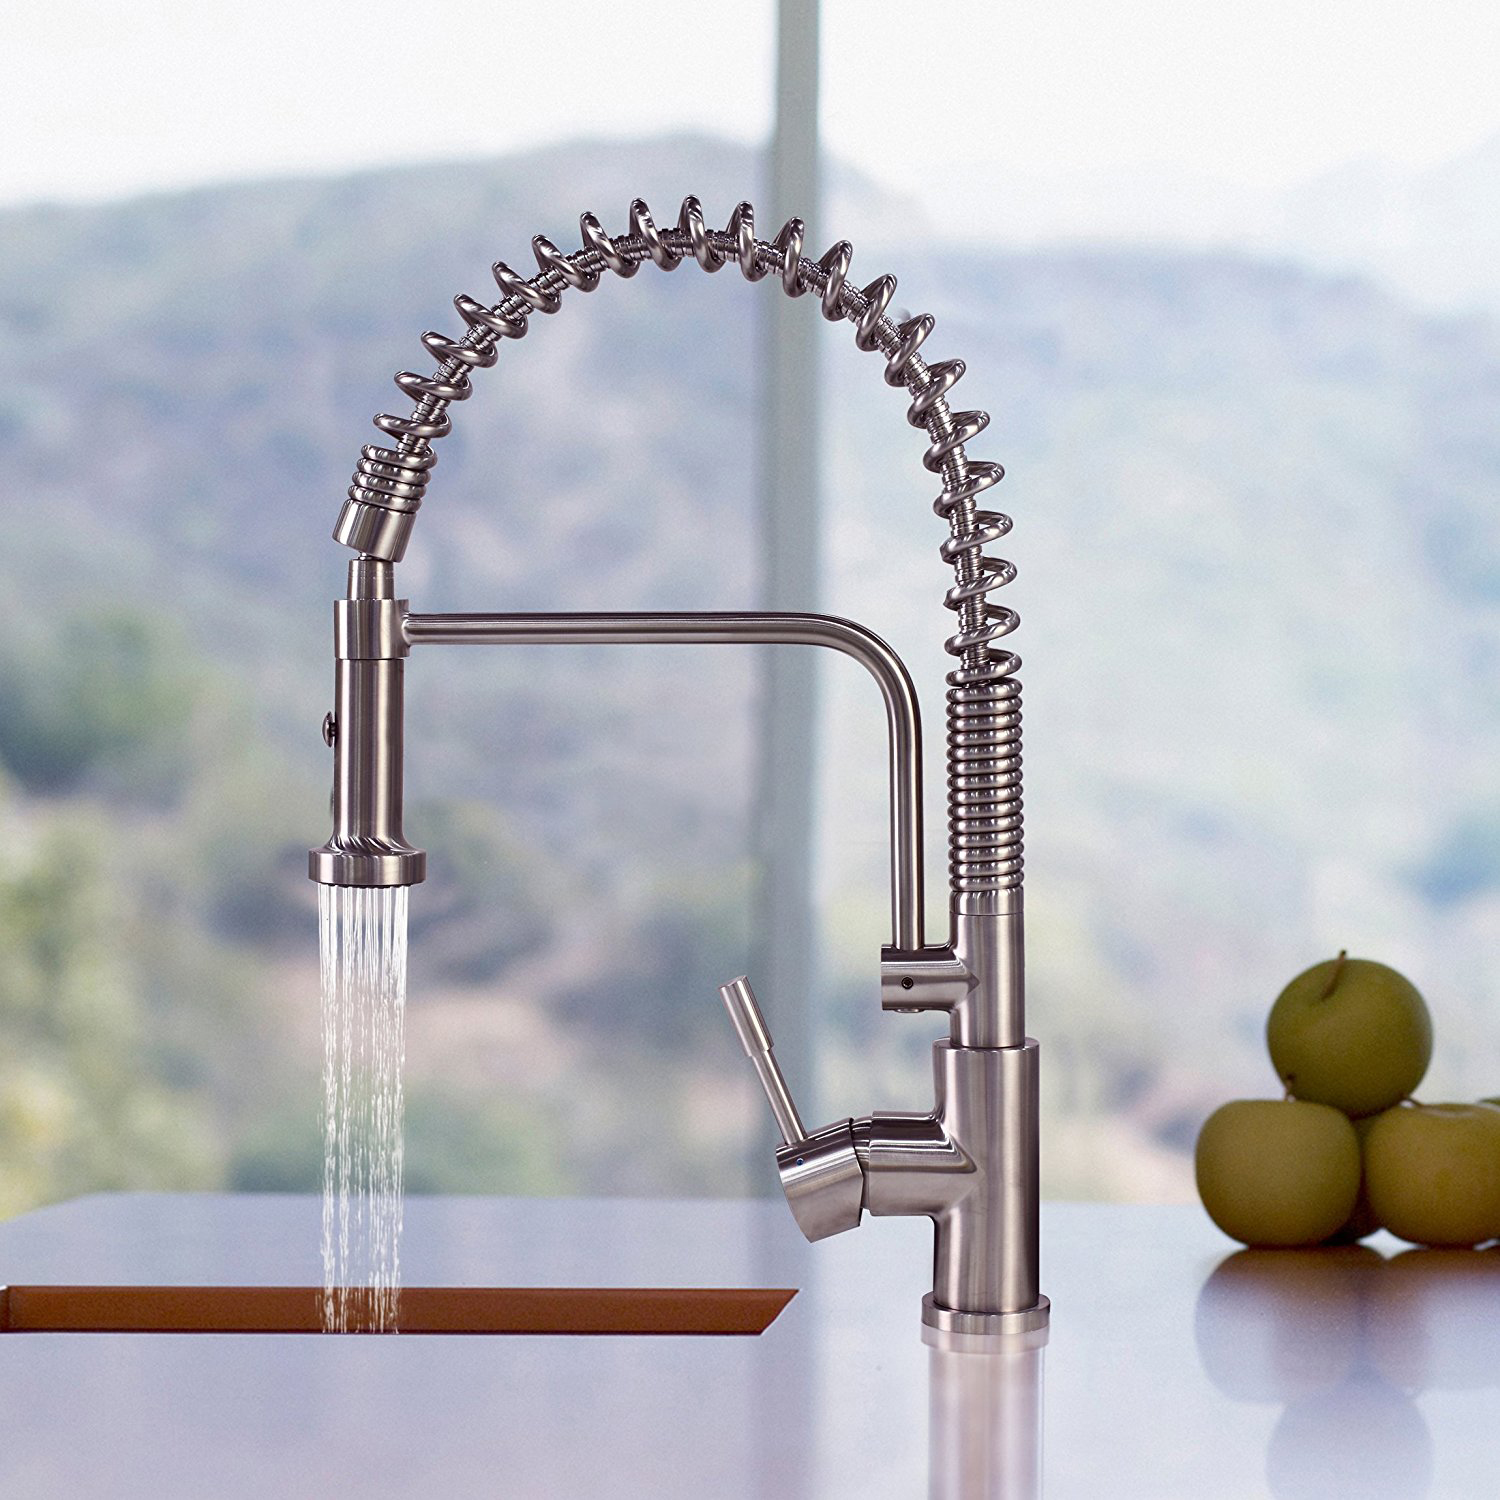 Cool Kitchen Faucet The 10 Best Kitchen Faucets Reviews Comprehensive Guide 2019